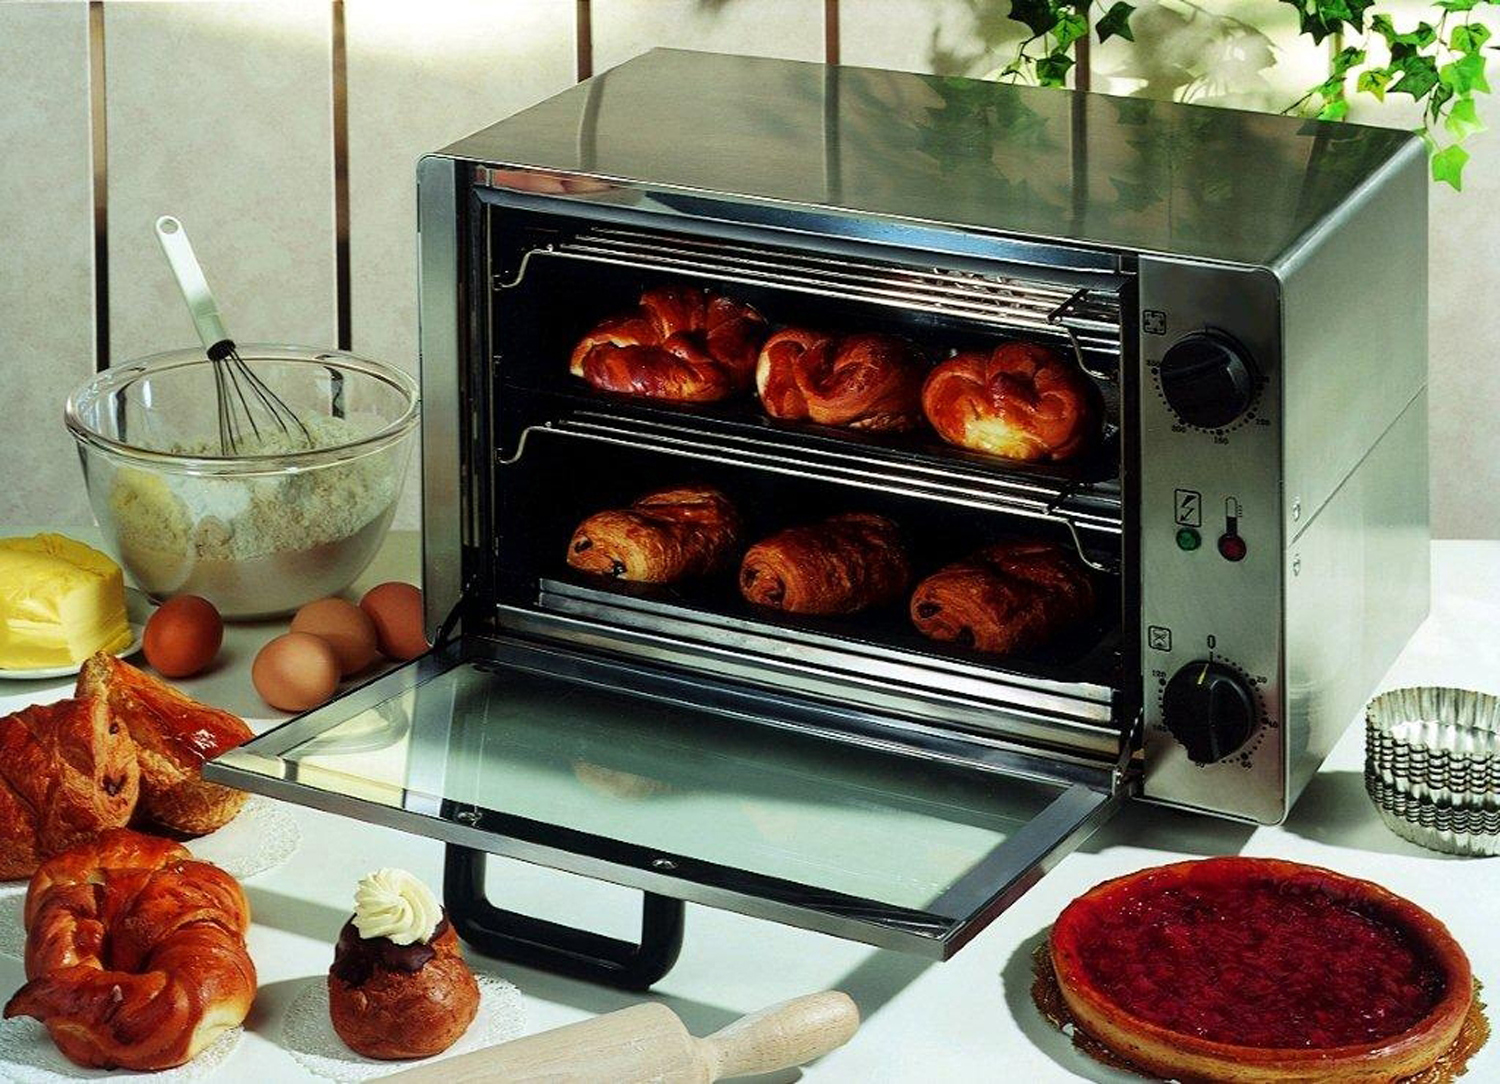 Cooking In Countertop Convection Oven : Countertop Convection Oven